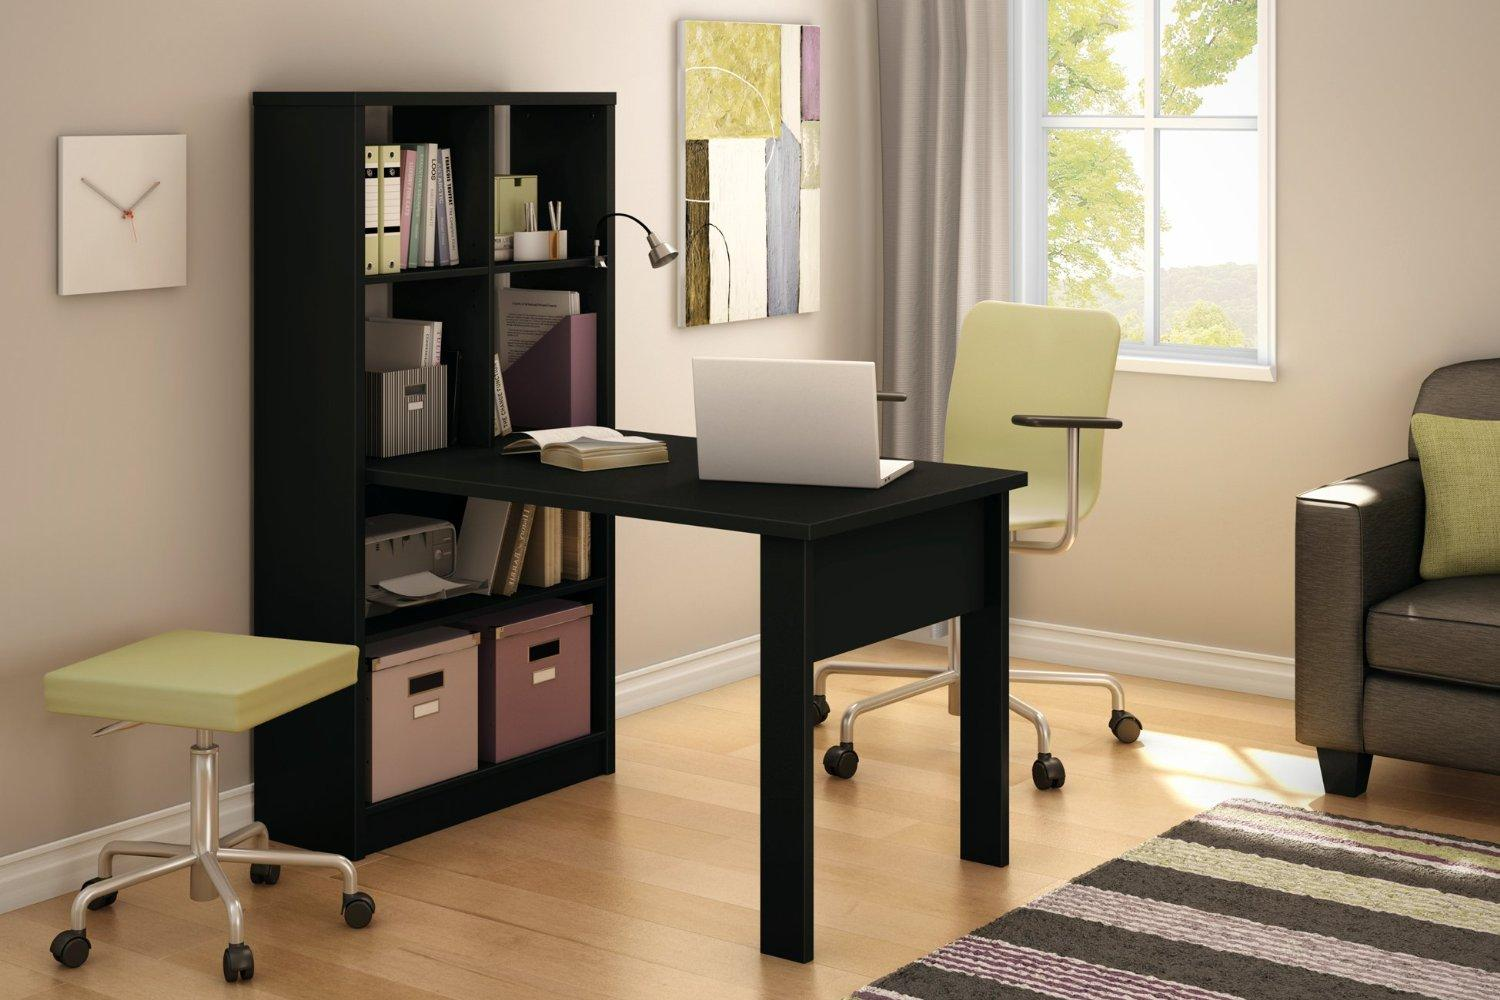 $159 South Shore Annexe Craft Table and Storage Unit Combo